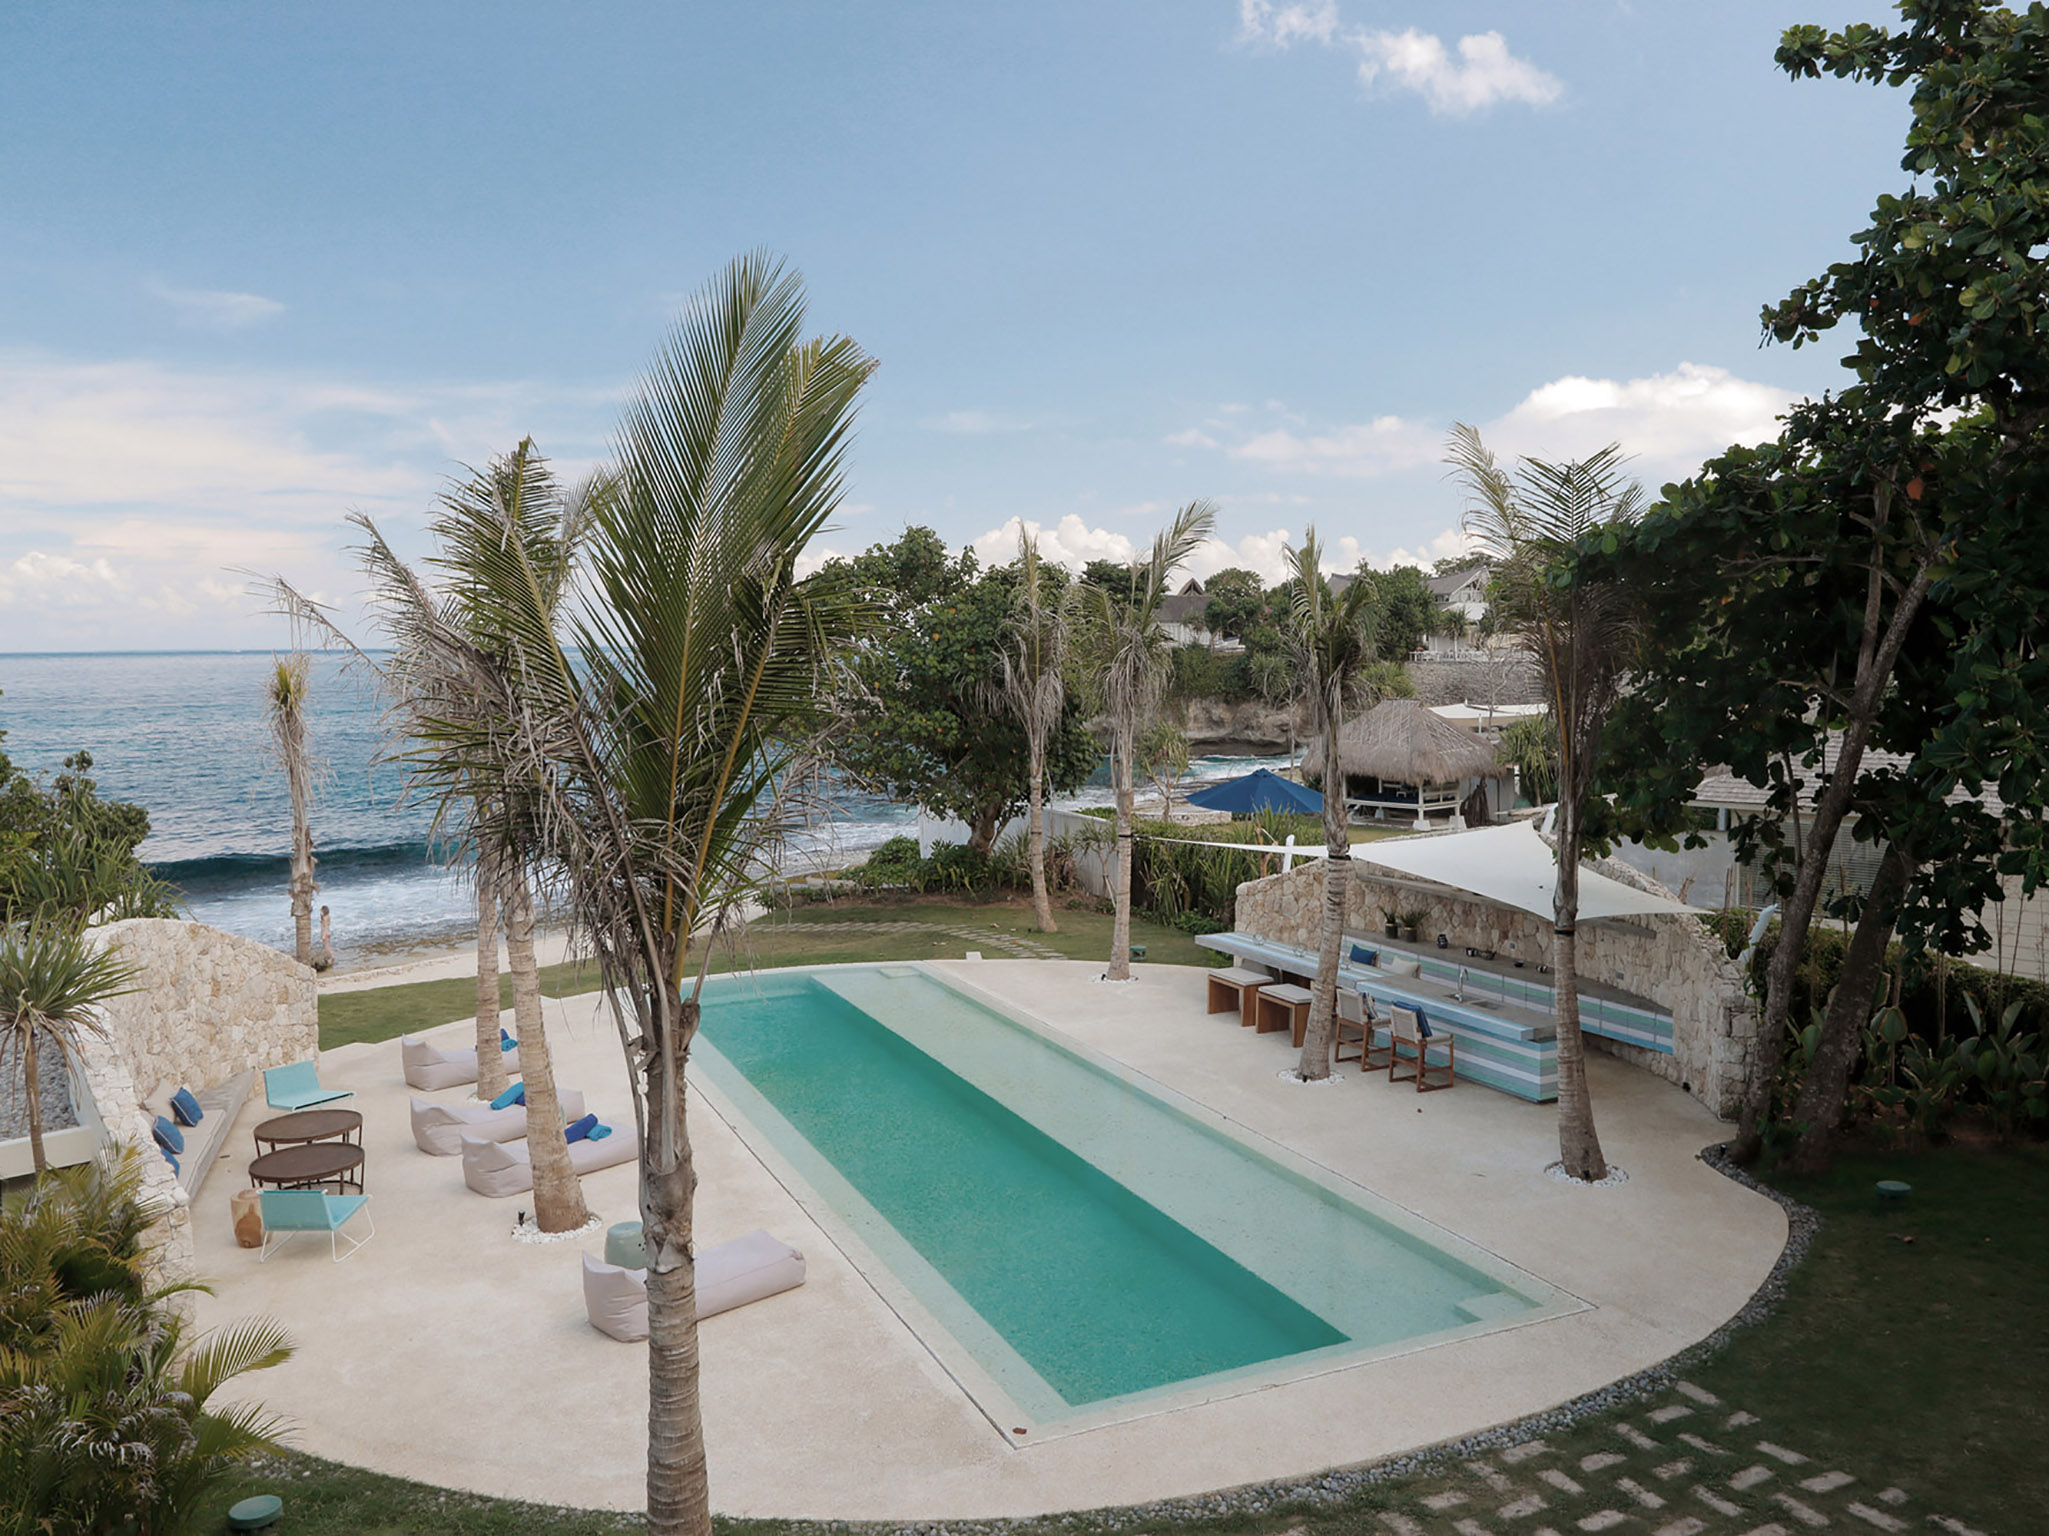 Villa Seascape - Pool perfection - Villa Seascape, Nusa Lembongan, Bali